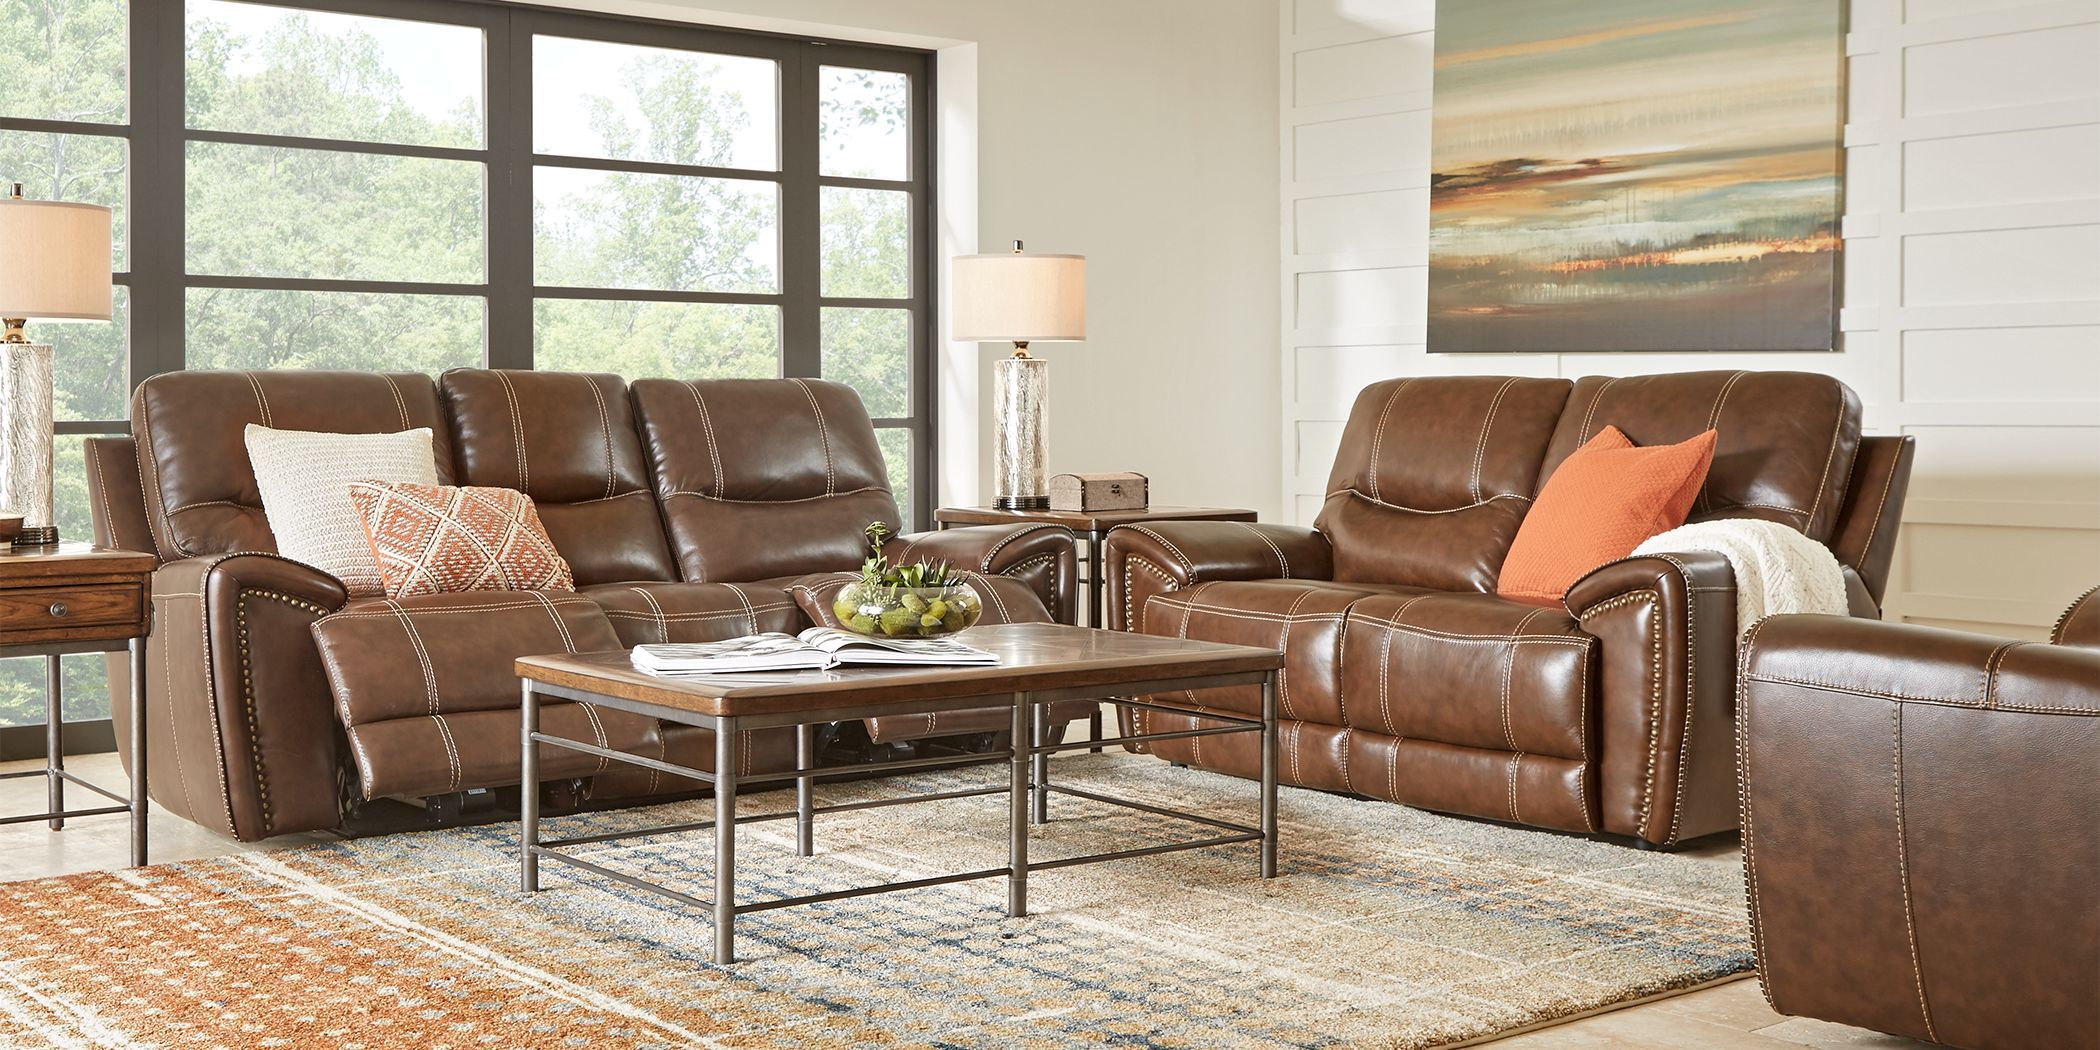 Italo Brown Leather 2 Pc Living Room With Reclining Sofa Living Room Sets Furniture Living Room Leather Furniture